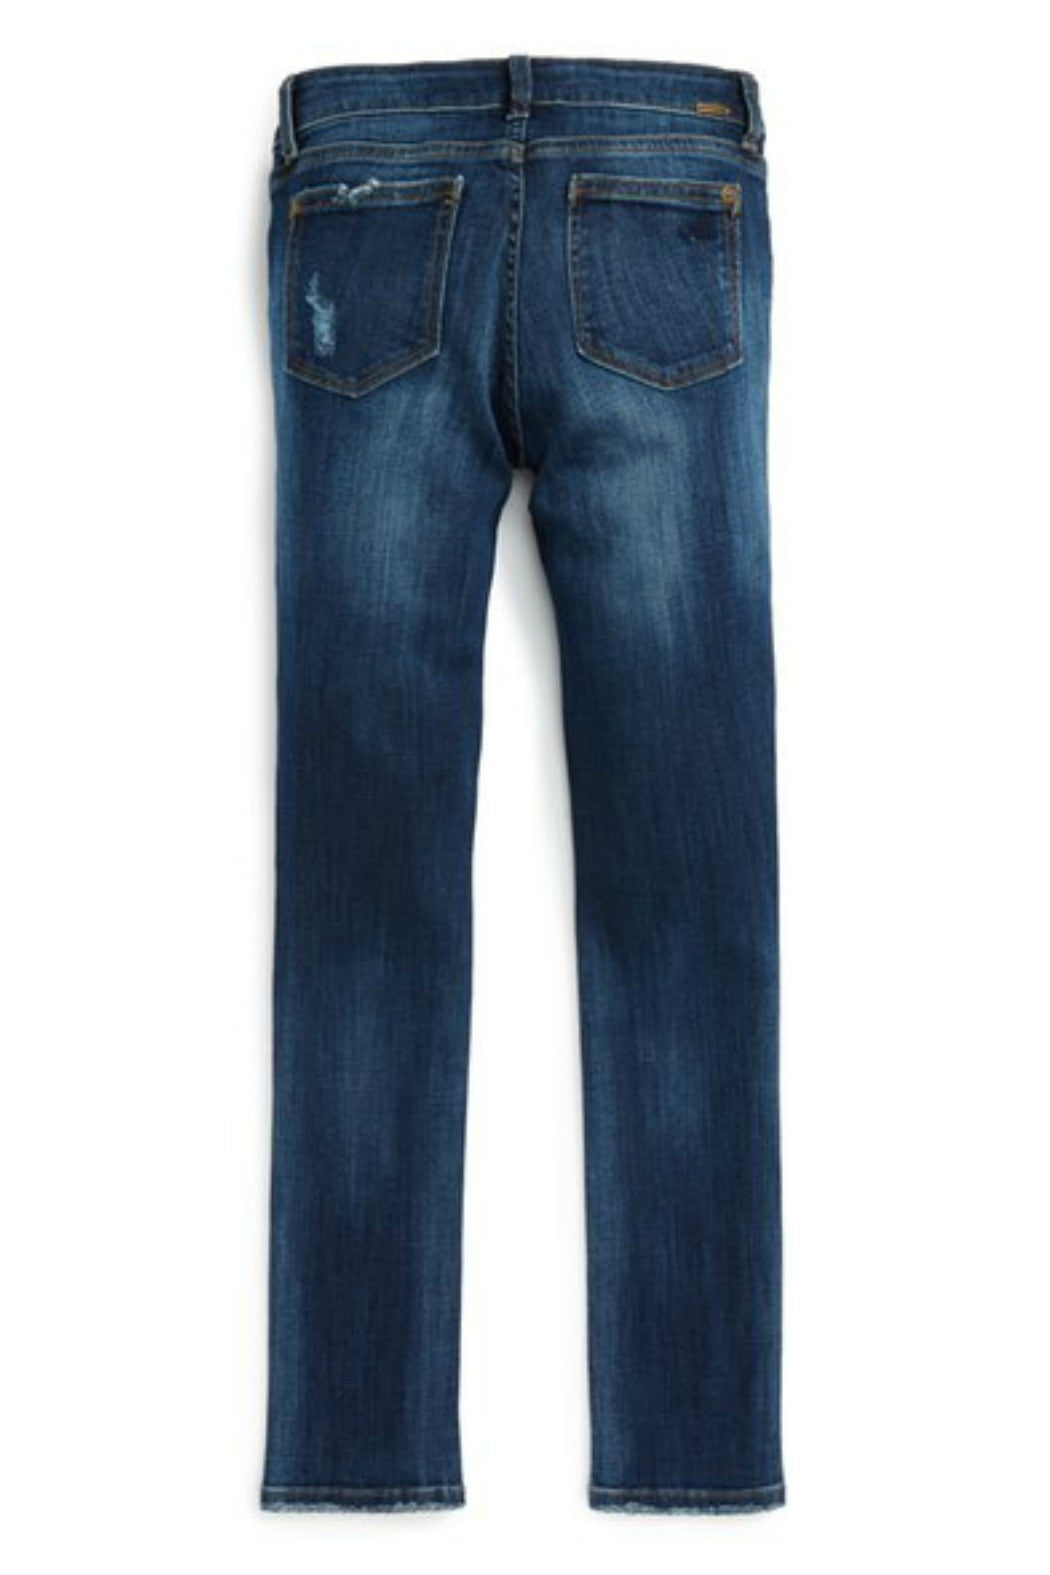 Chloe Skinny in Seymour - R+D Hipster Emporium | Womens & Mens Clothing - 2